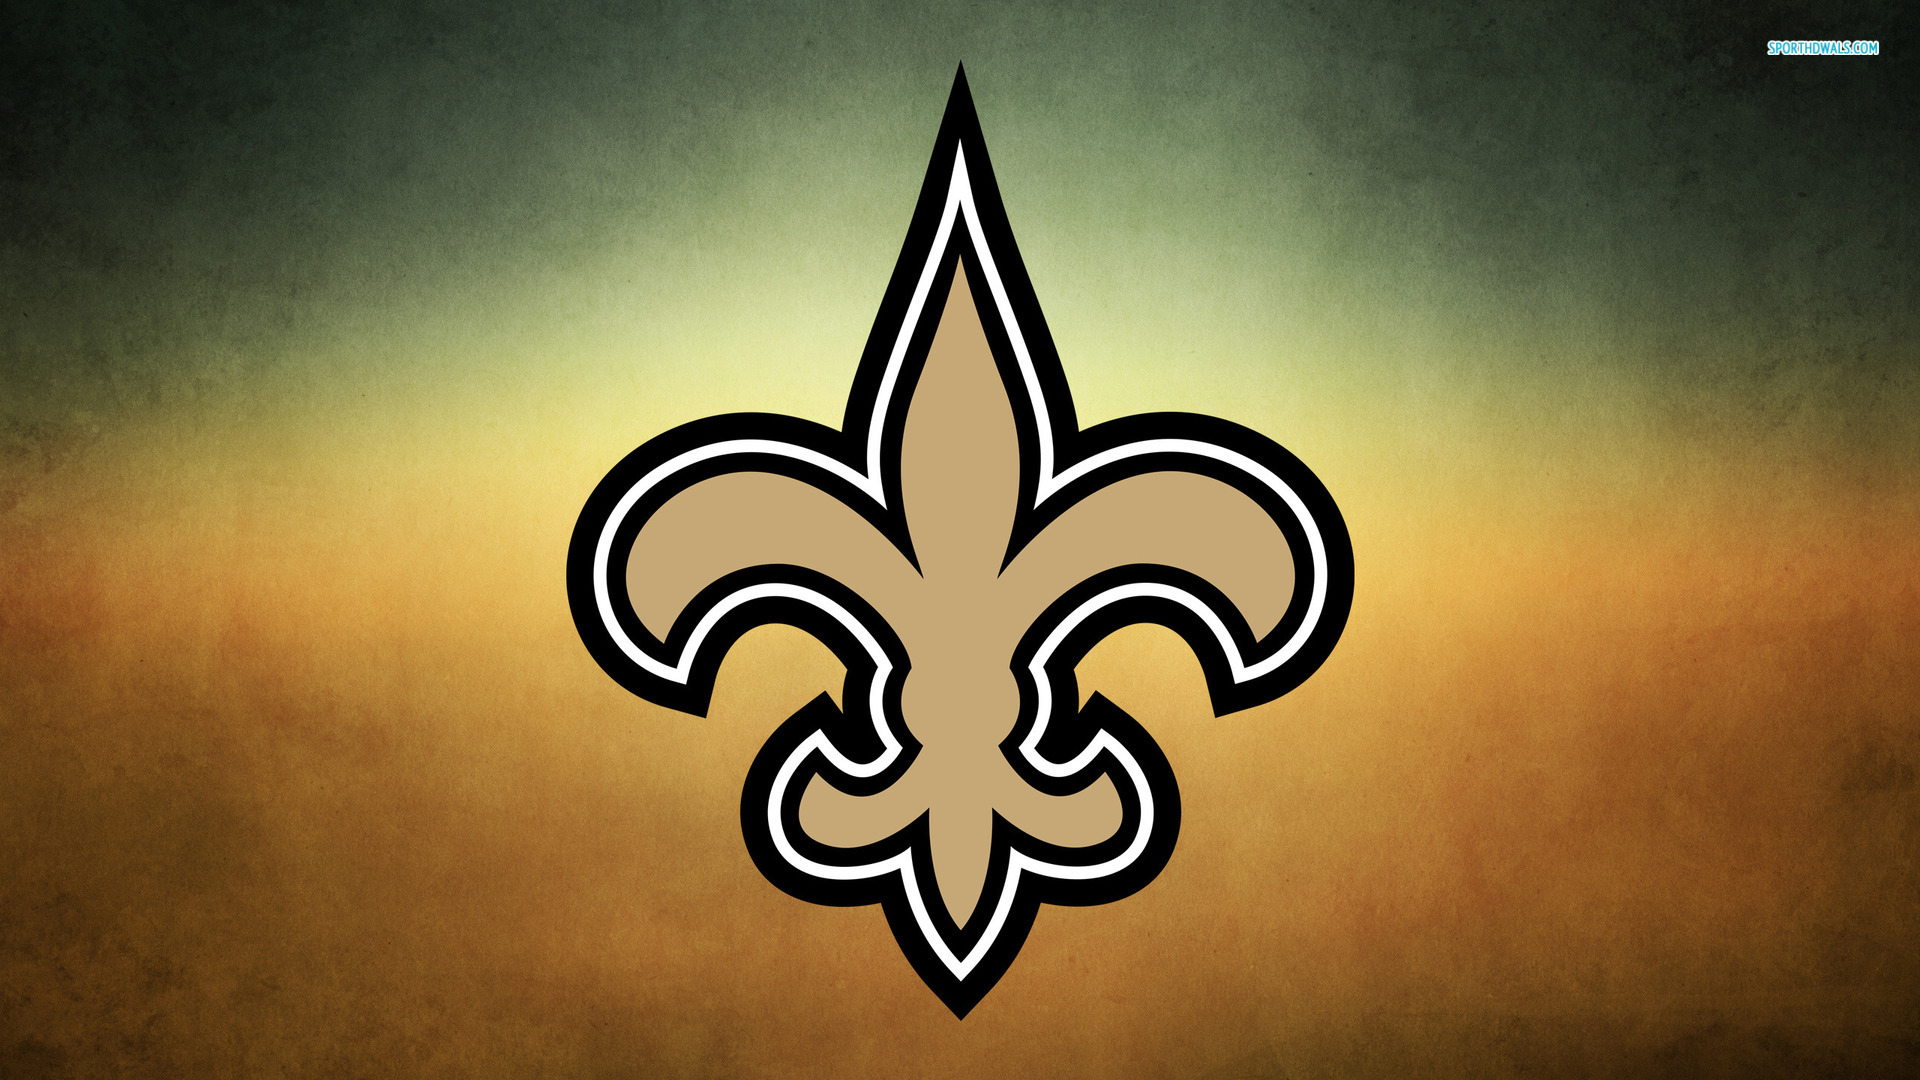 The best New Orleans Saints wallpaper wallpaper ever?